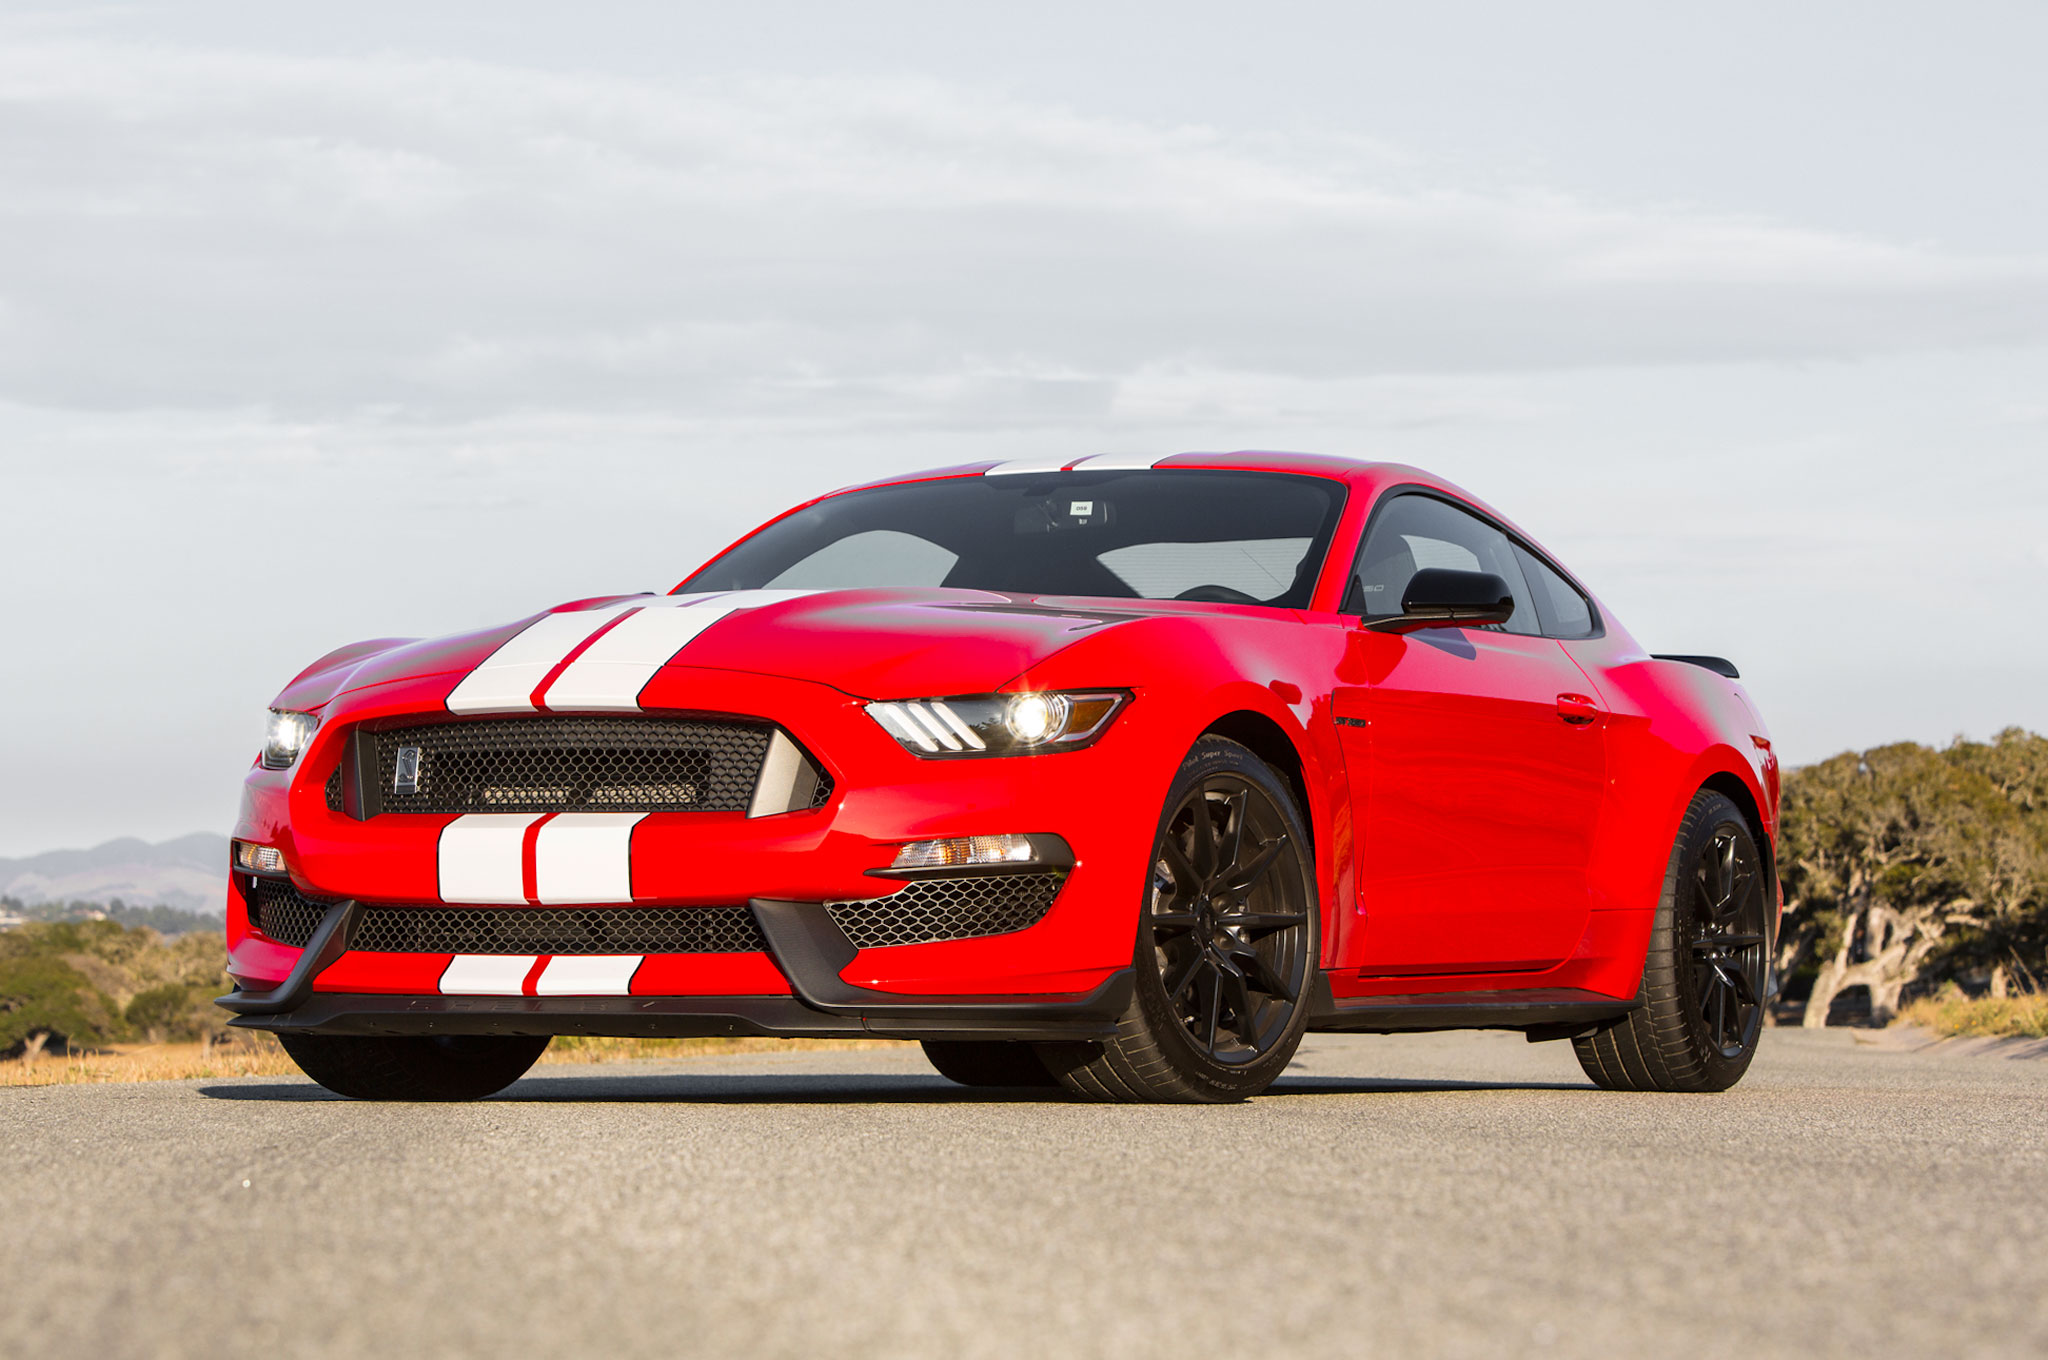 Gt350r For Sale >> 2017 Ford Shelby GT350 One Week Review | Automobile Magazine